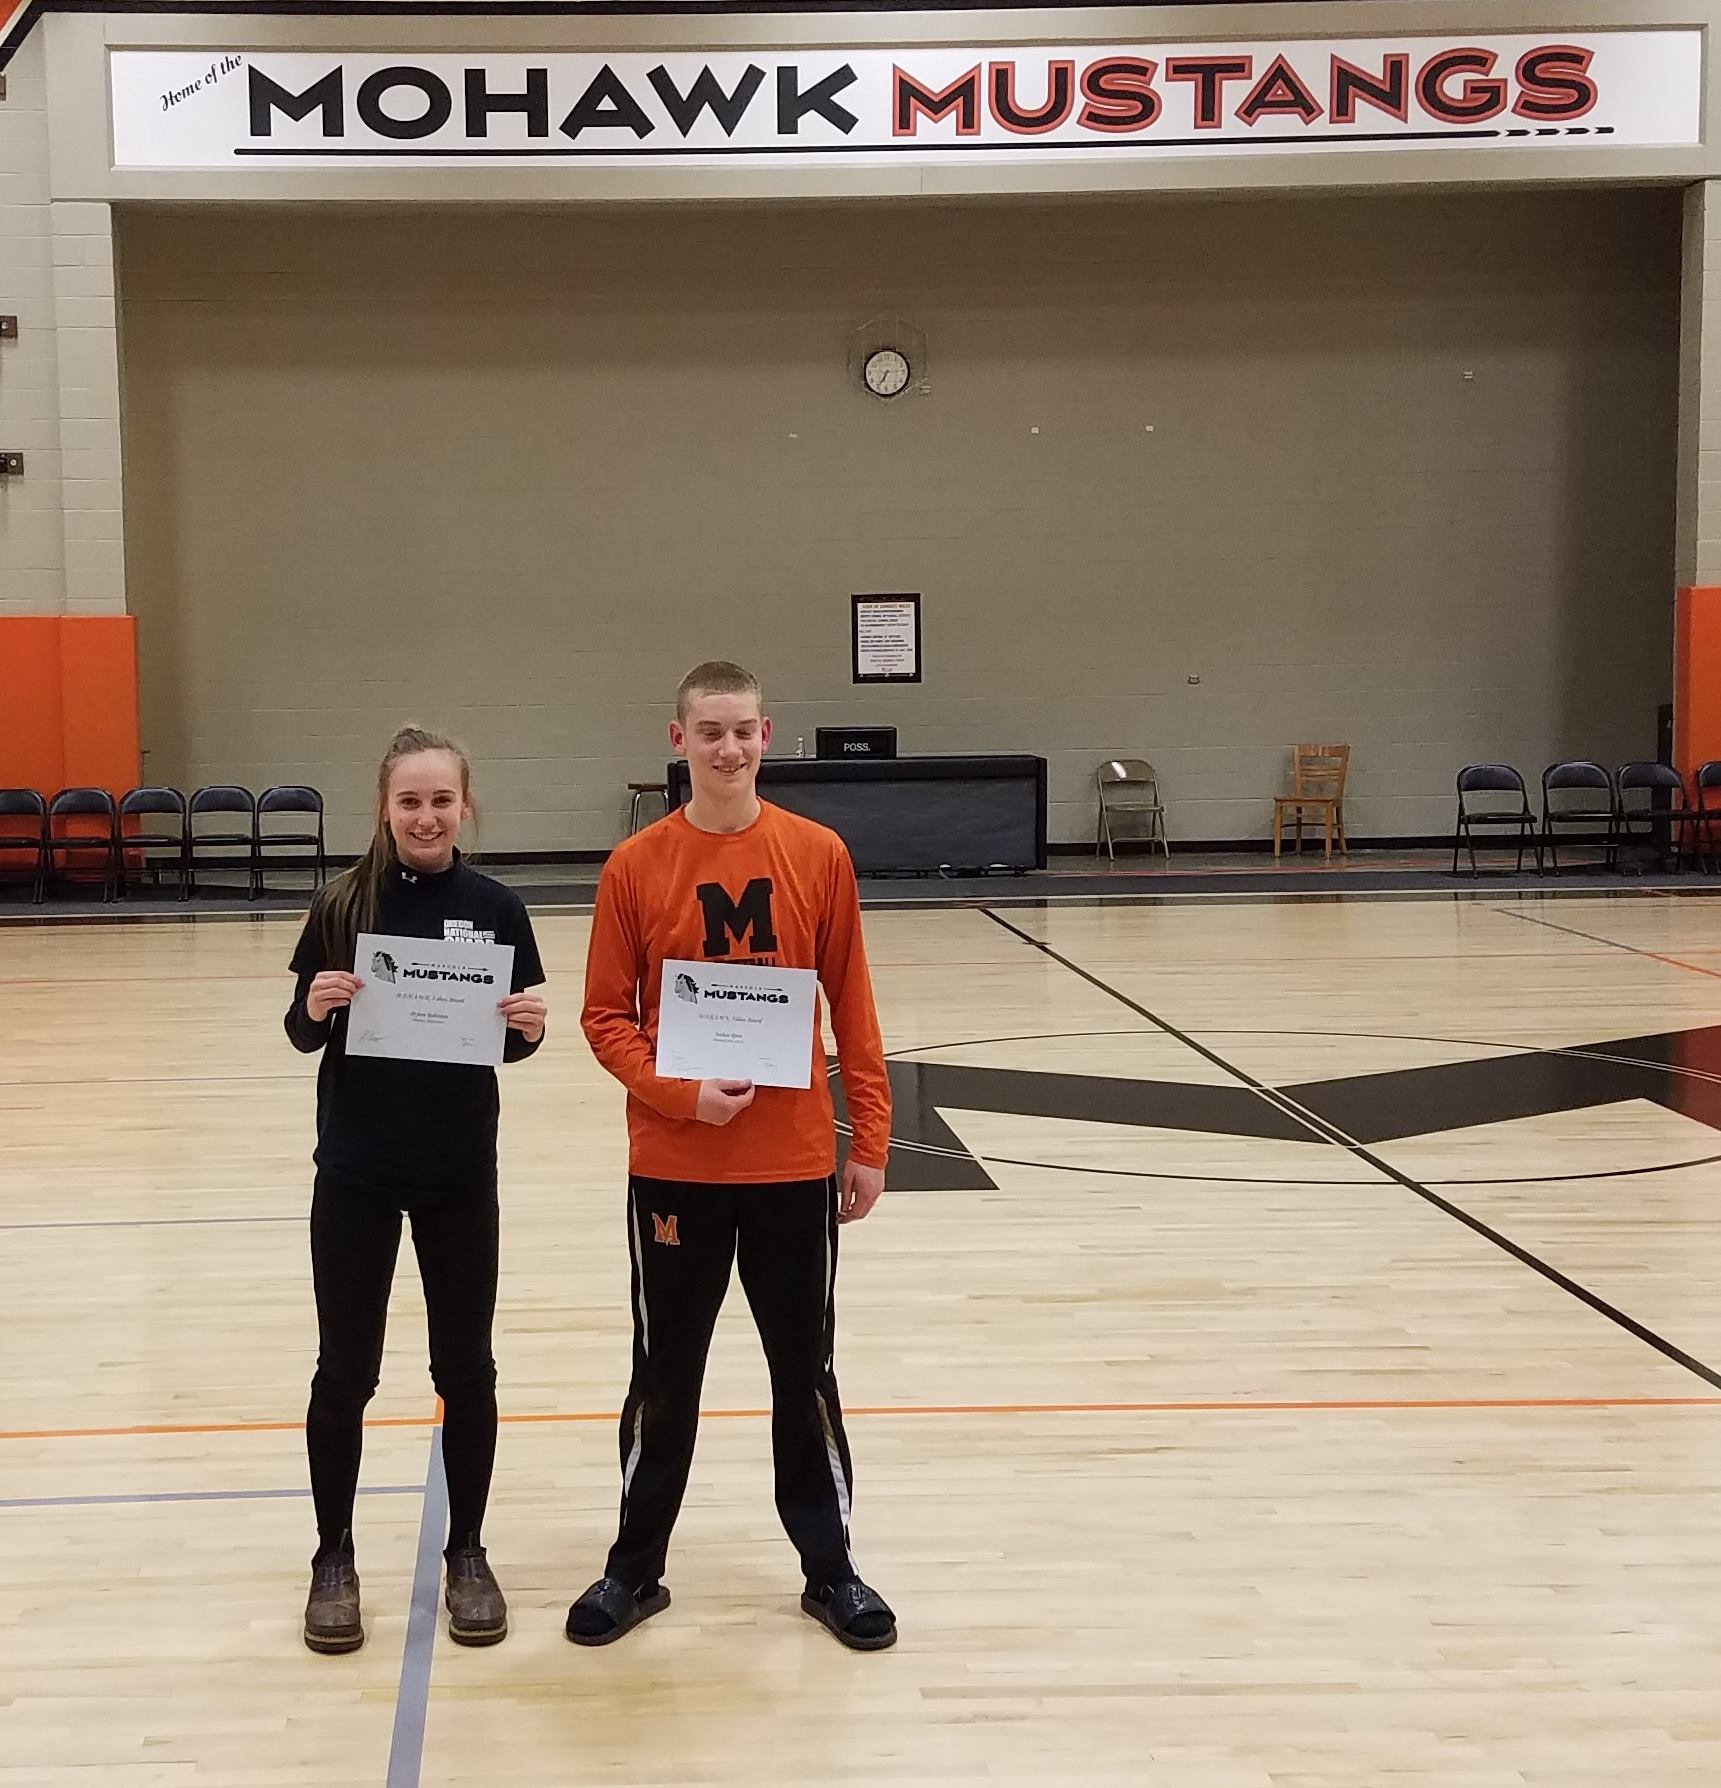 Students Win Mohawk Athletics Values Award